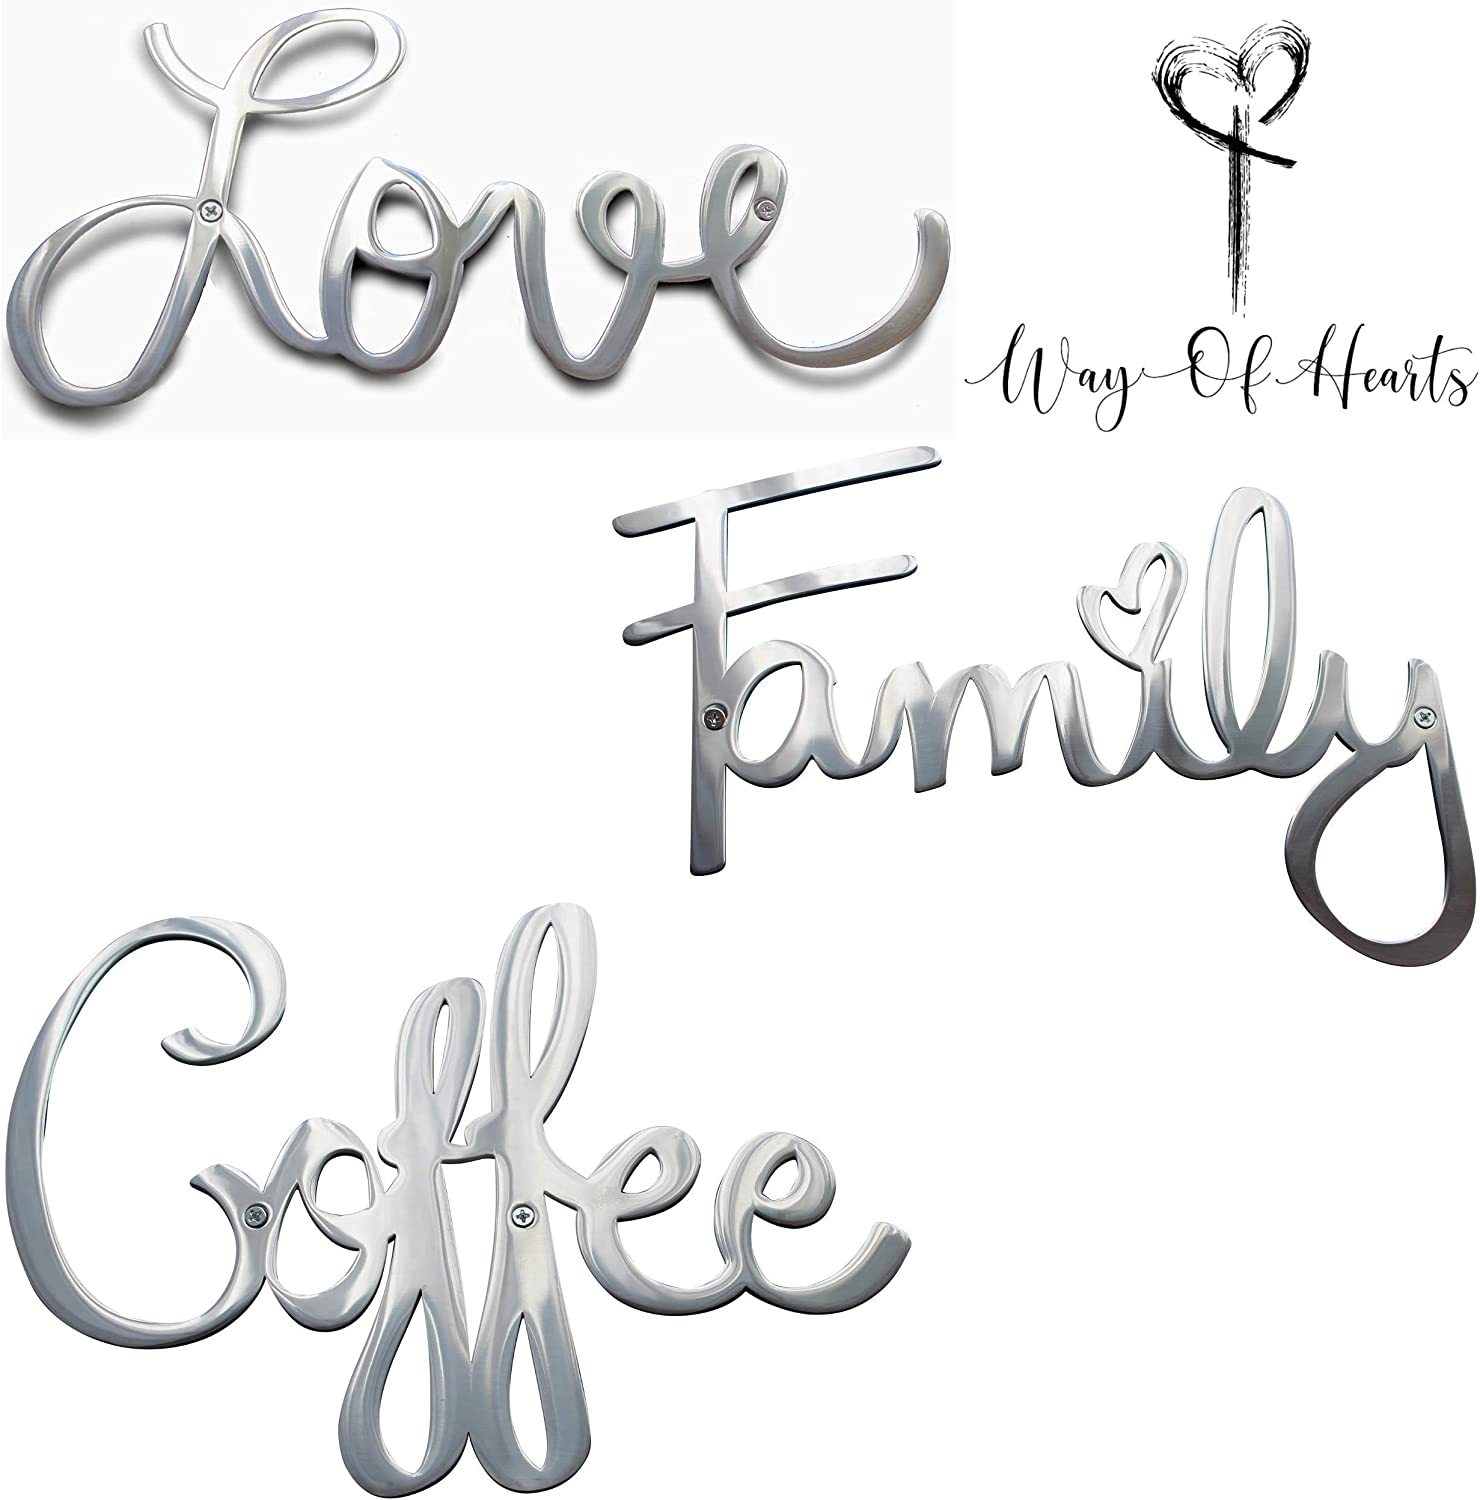 Way Of Hearts Metal Love, Family and Coffee Signs Bundle-Silver Wall Decor-Farmhouse Wall Decorations for Living Room-Wall Art- Home and Kitchen Decor-Room Decor-Polished Stainless Steel Signs